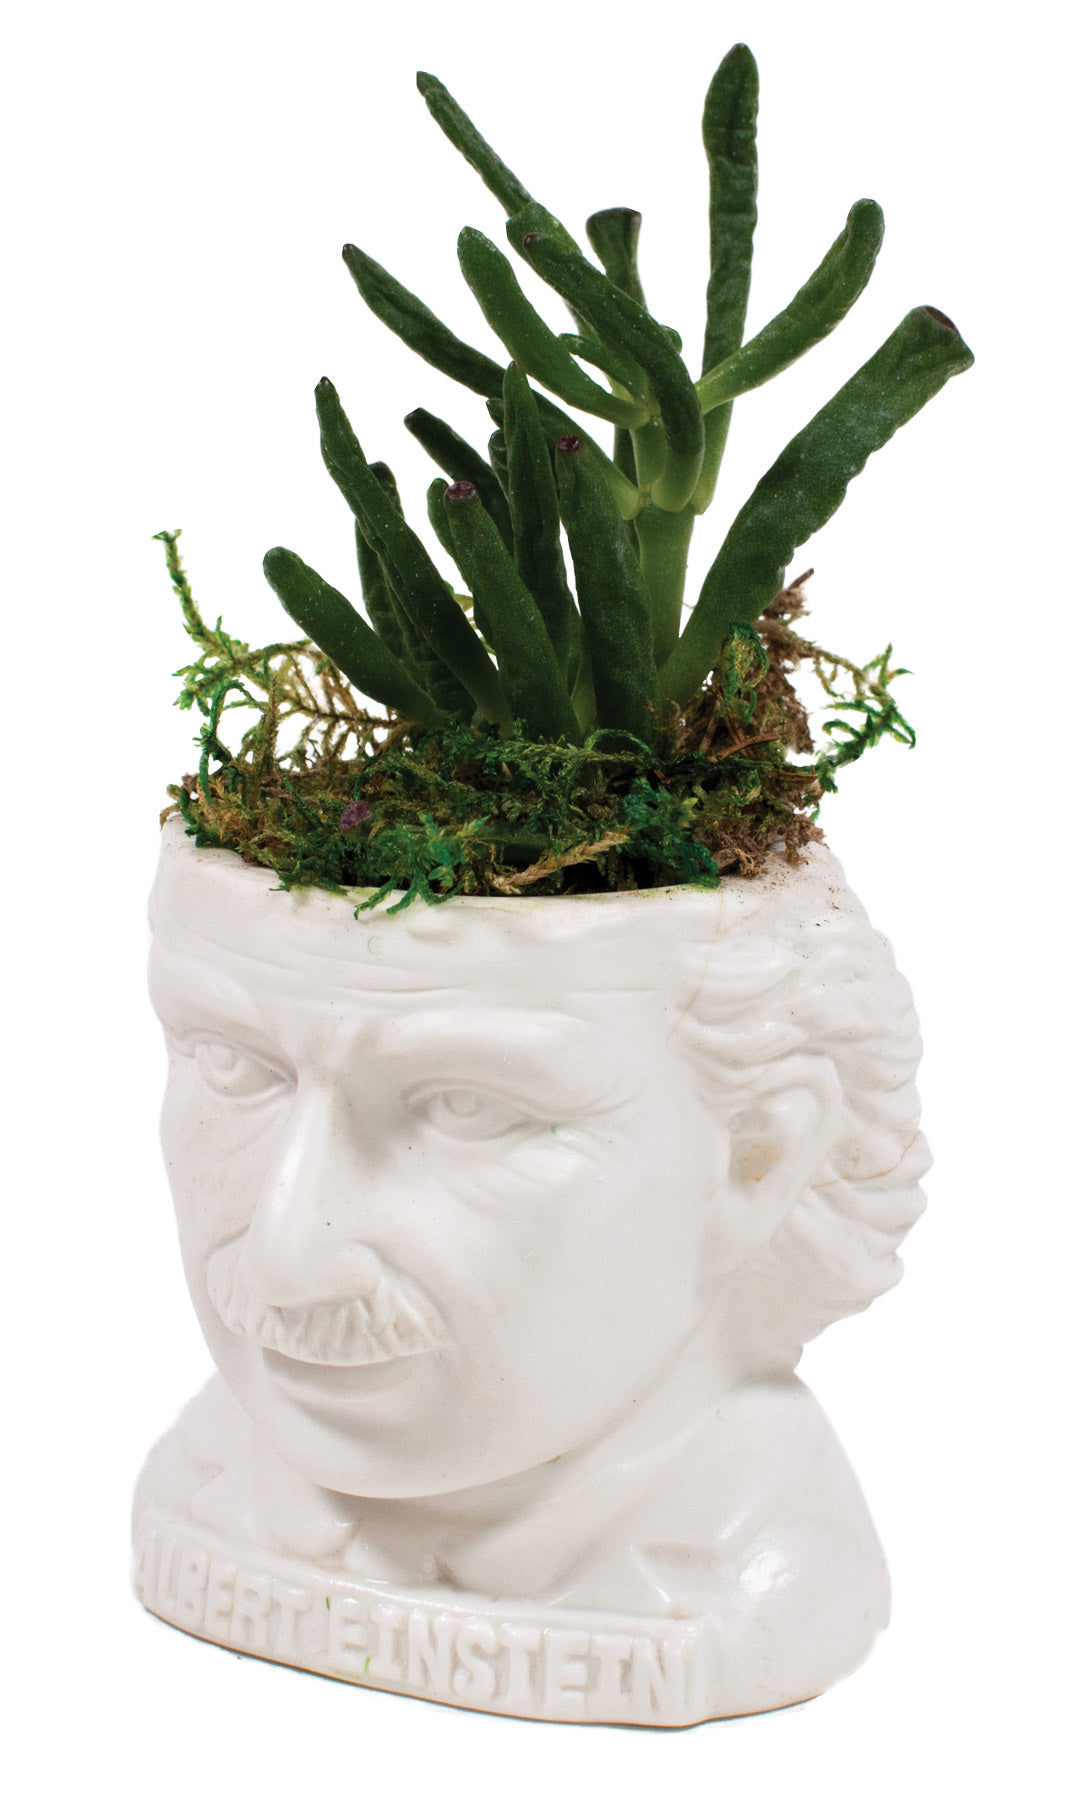 Albert Einstein Planter